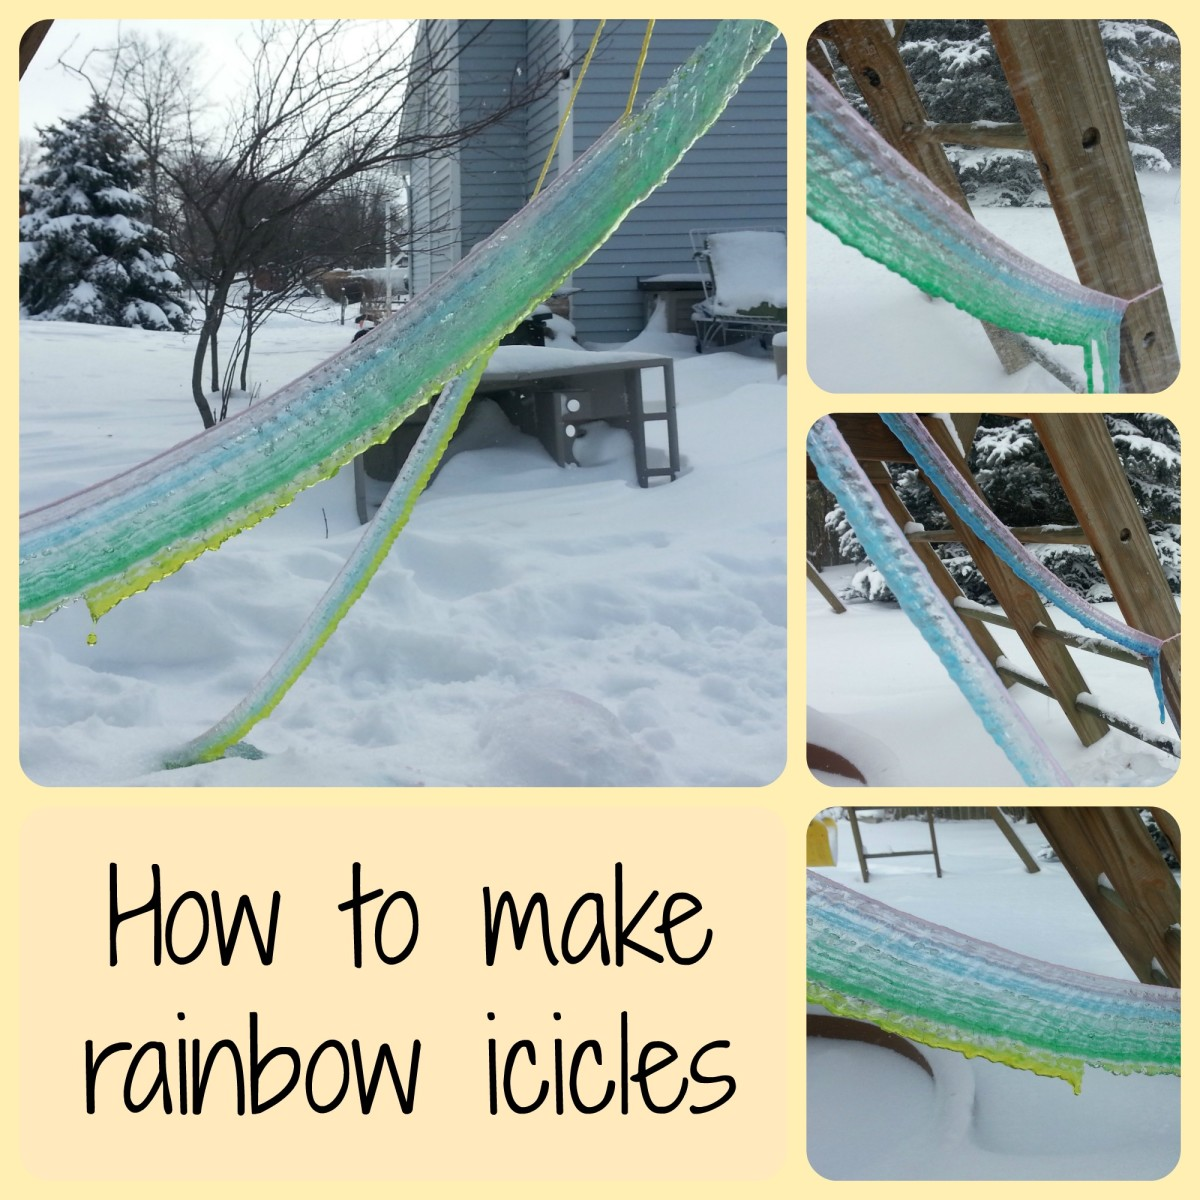 How to make rainbow icicles.